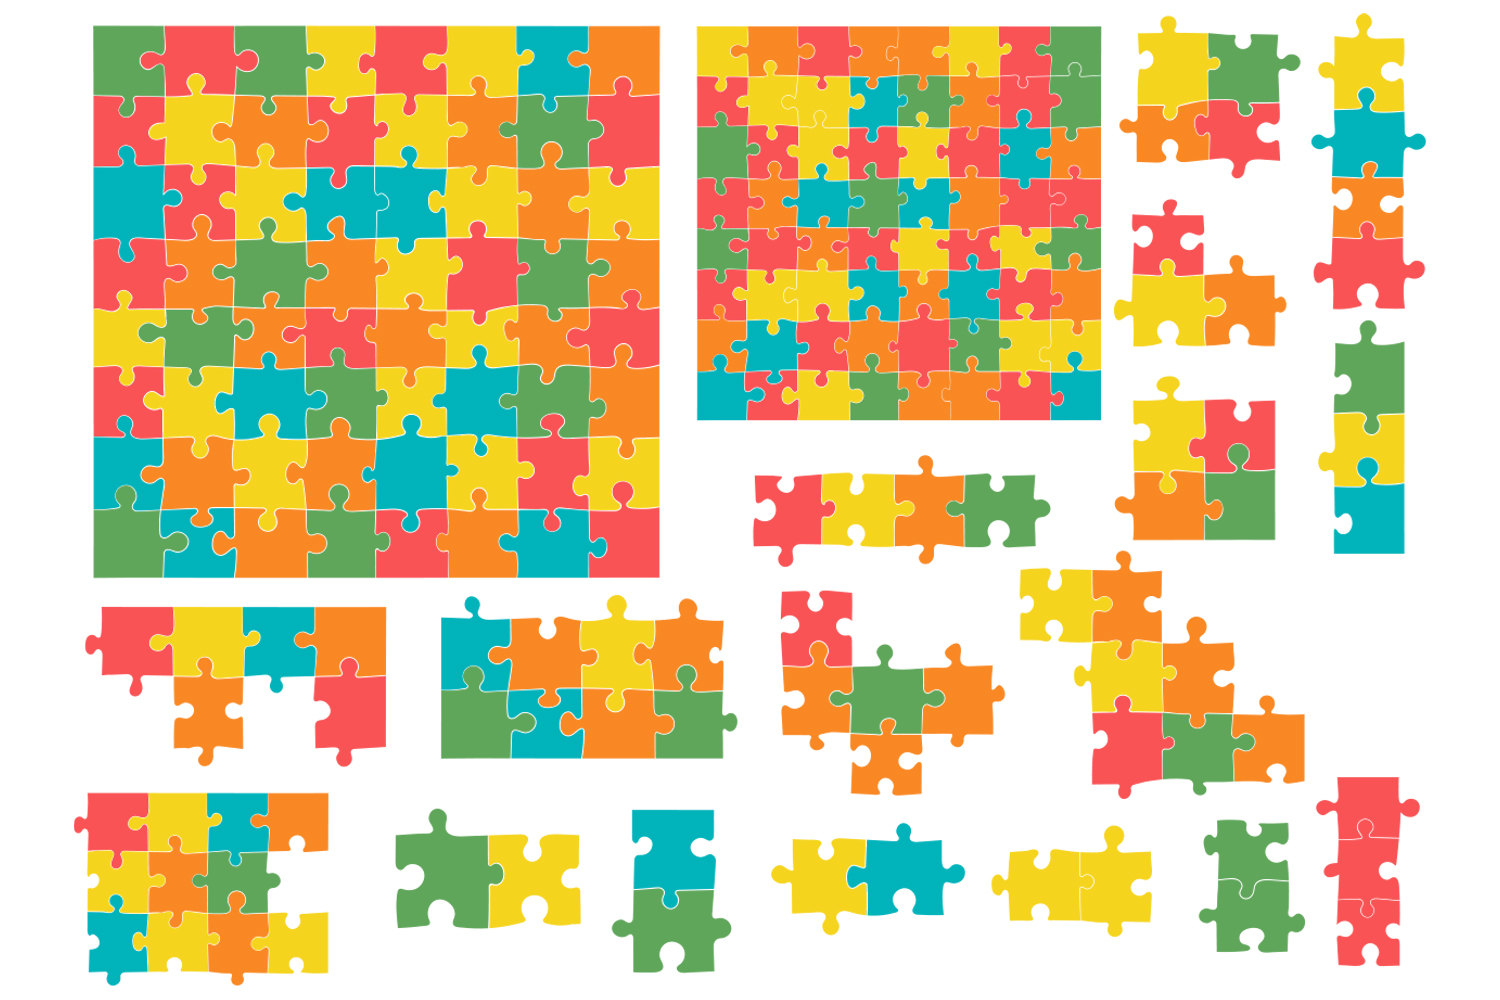 Jigsaw Puzzle Pieces example image 2